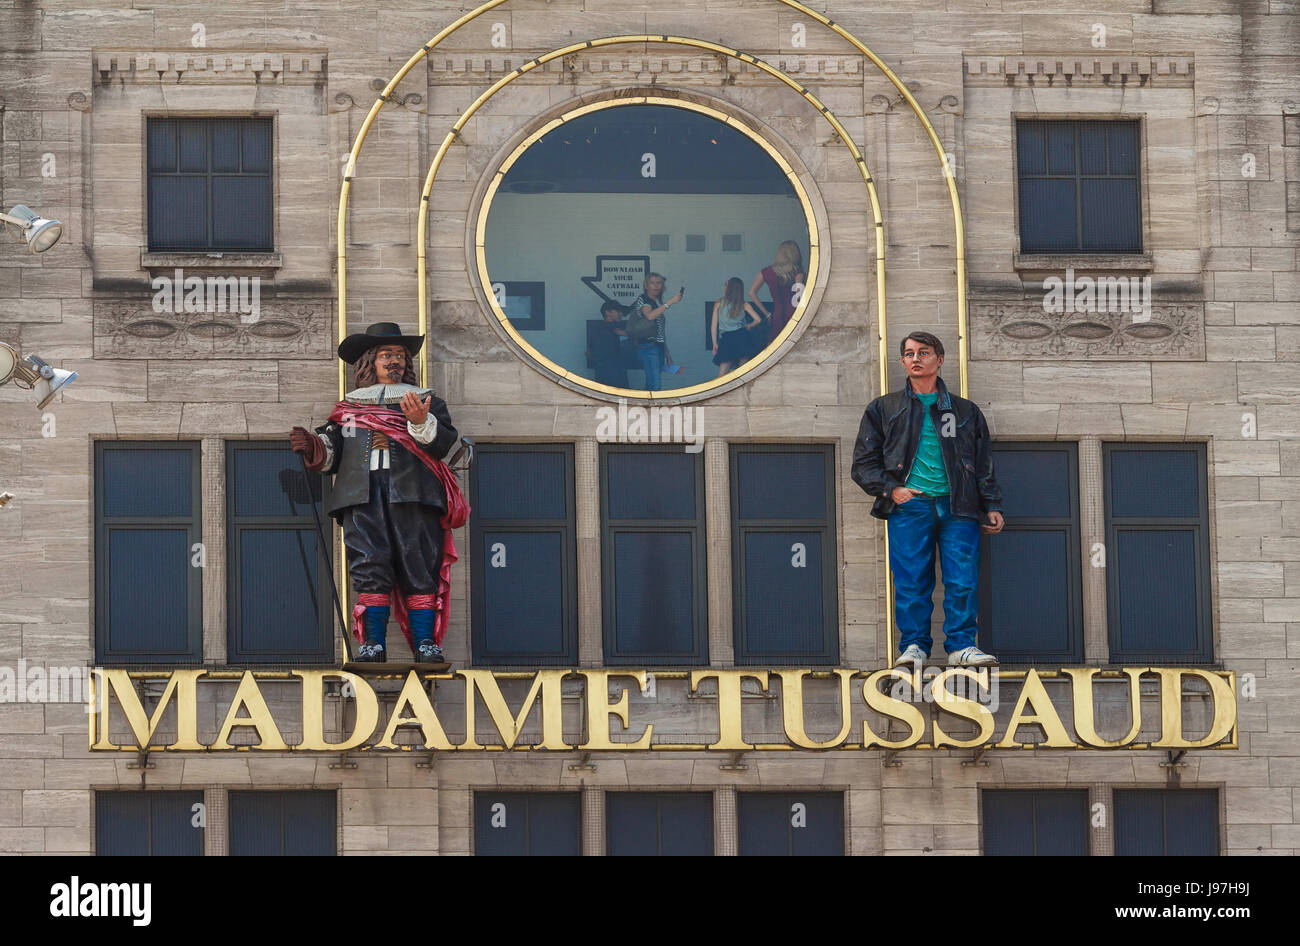 The sign of Madame Tussaud wax museum in Amsterdam, Netherlands. - Stock Image